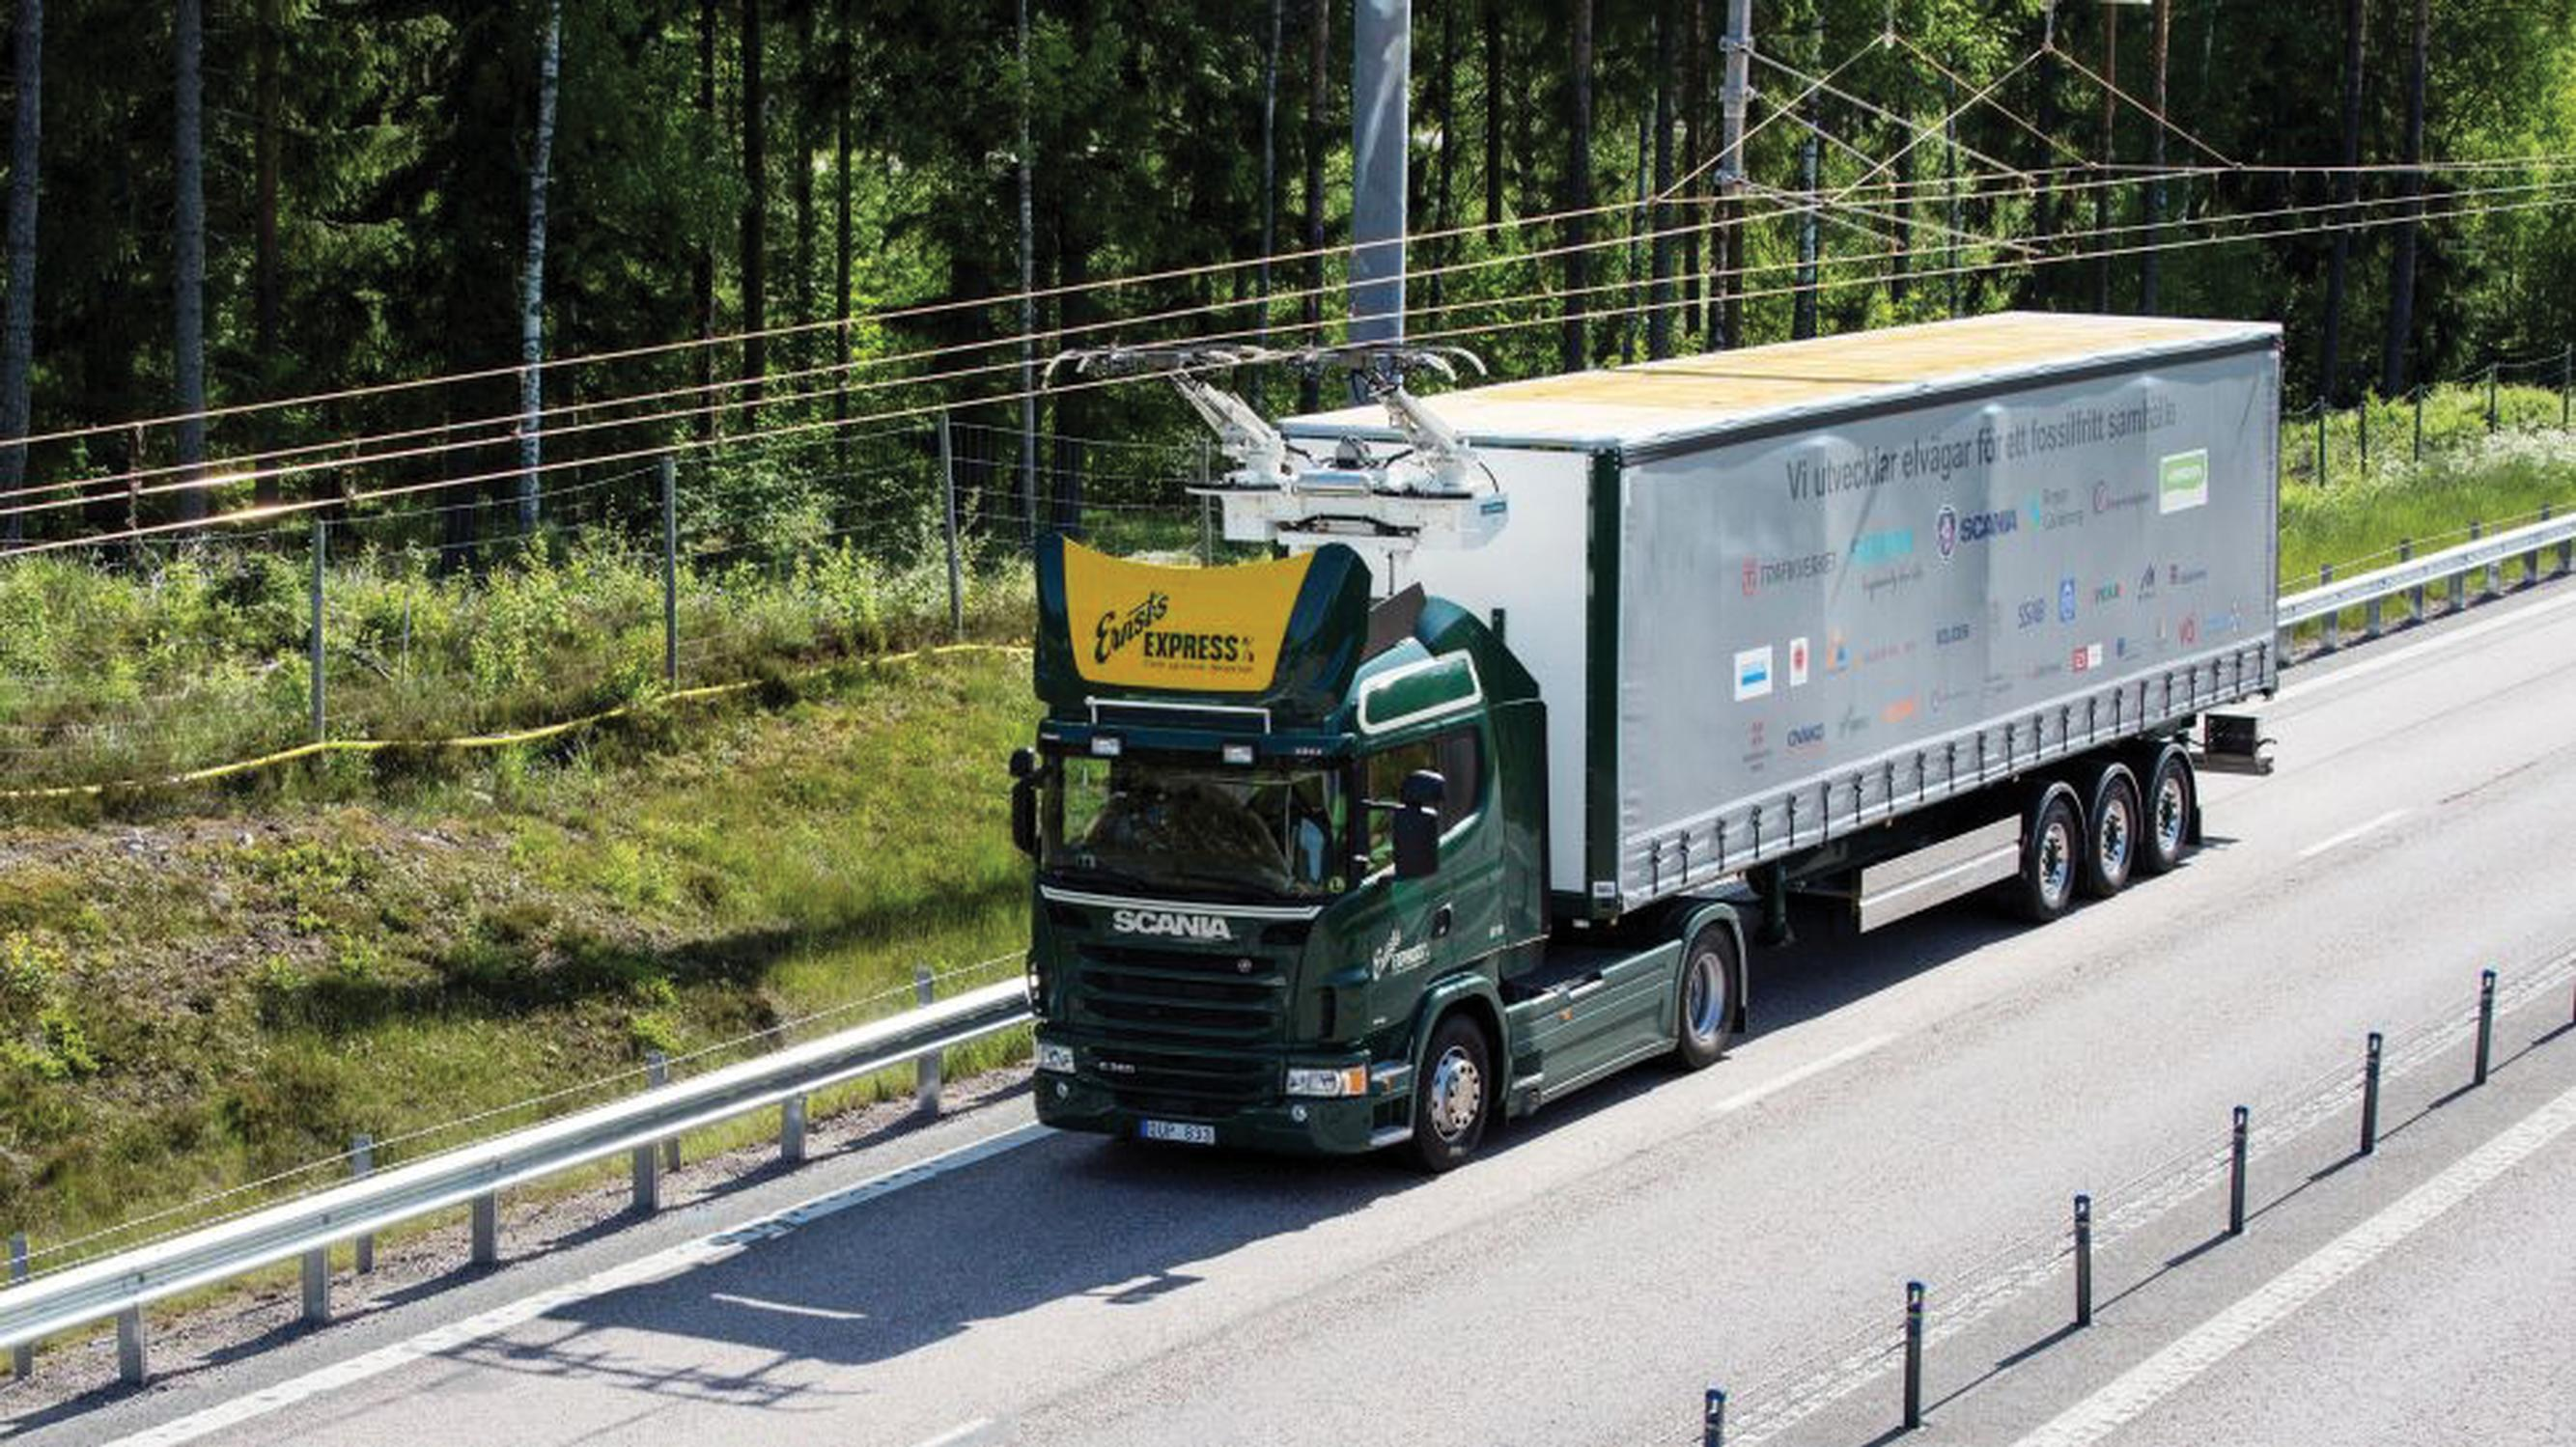 Trials abroad are using overhead wires to charge hybrid lorries